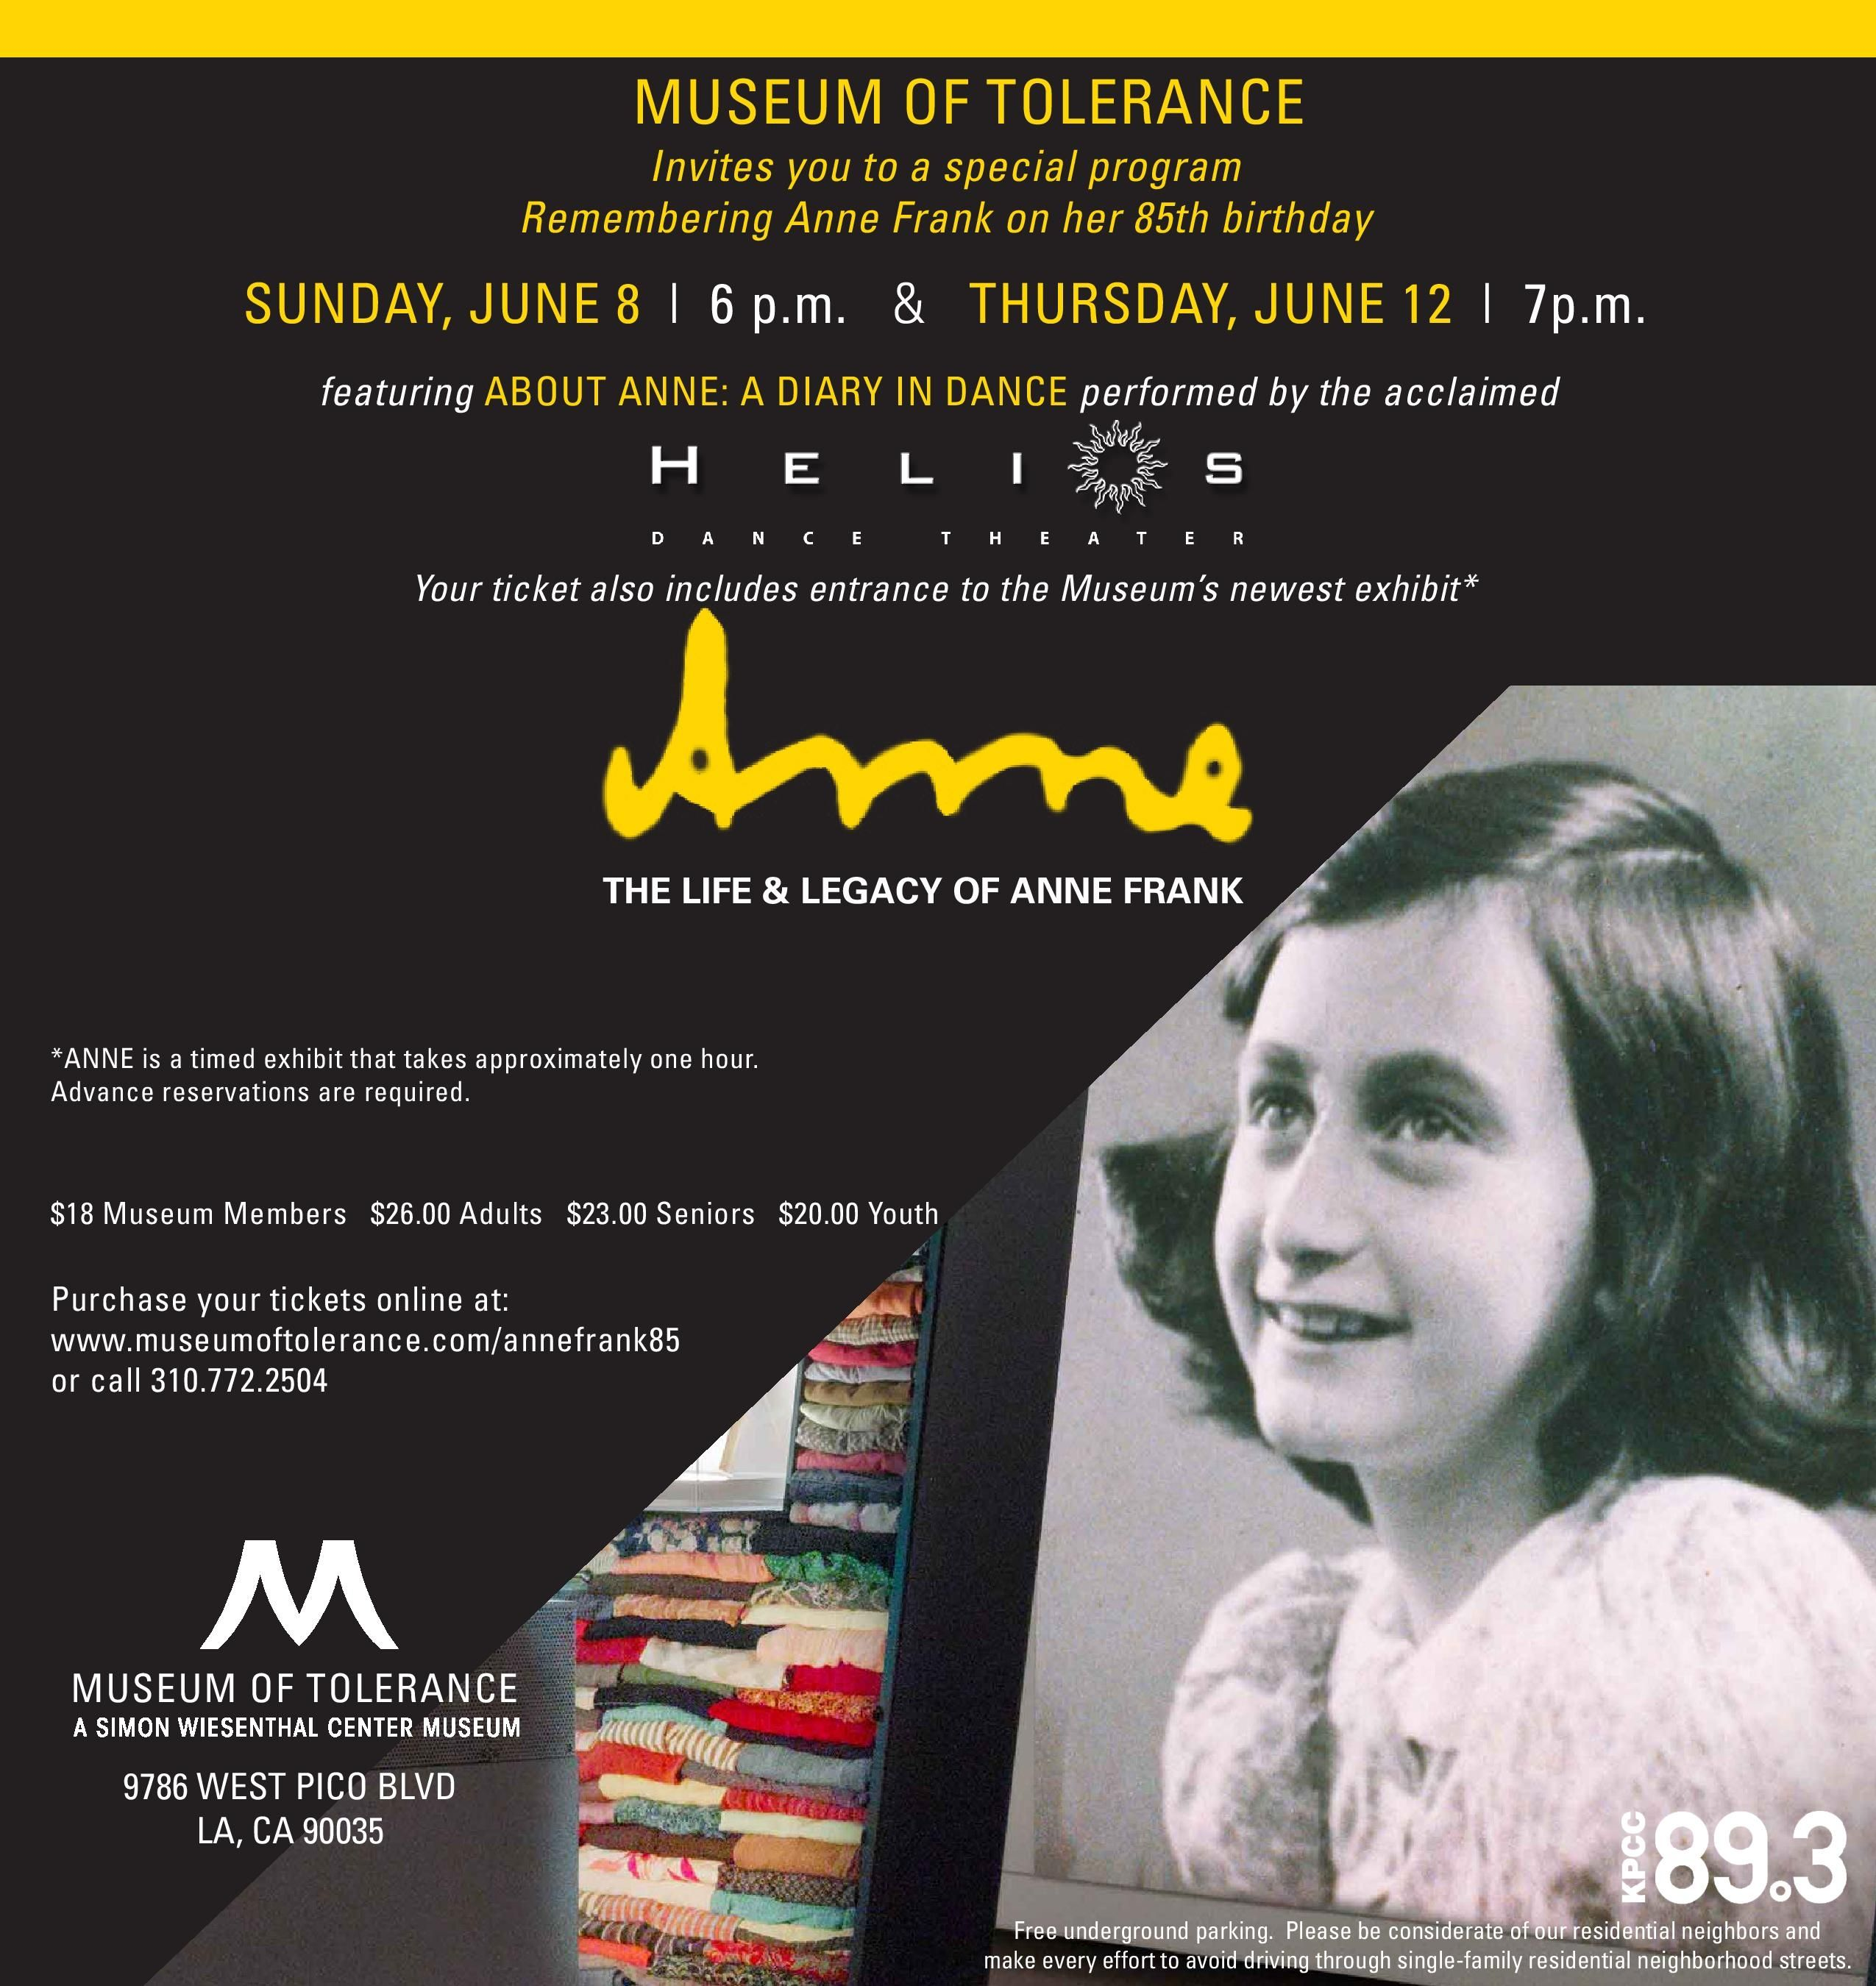 Remember Annefrank On What Would Have Been Her 85th Birthday